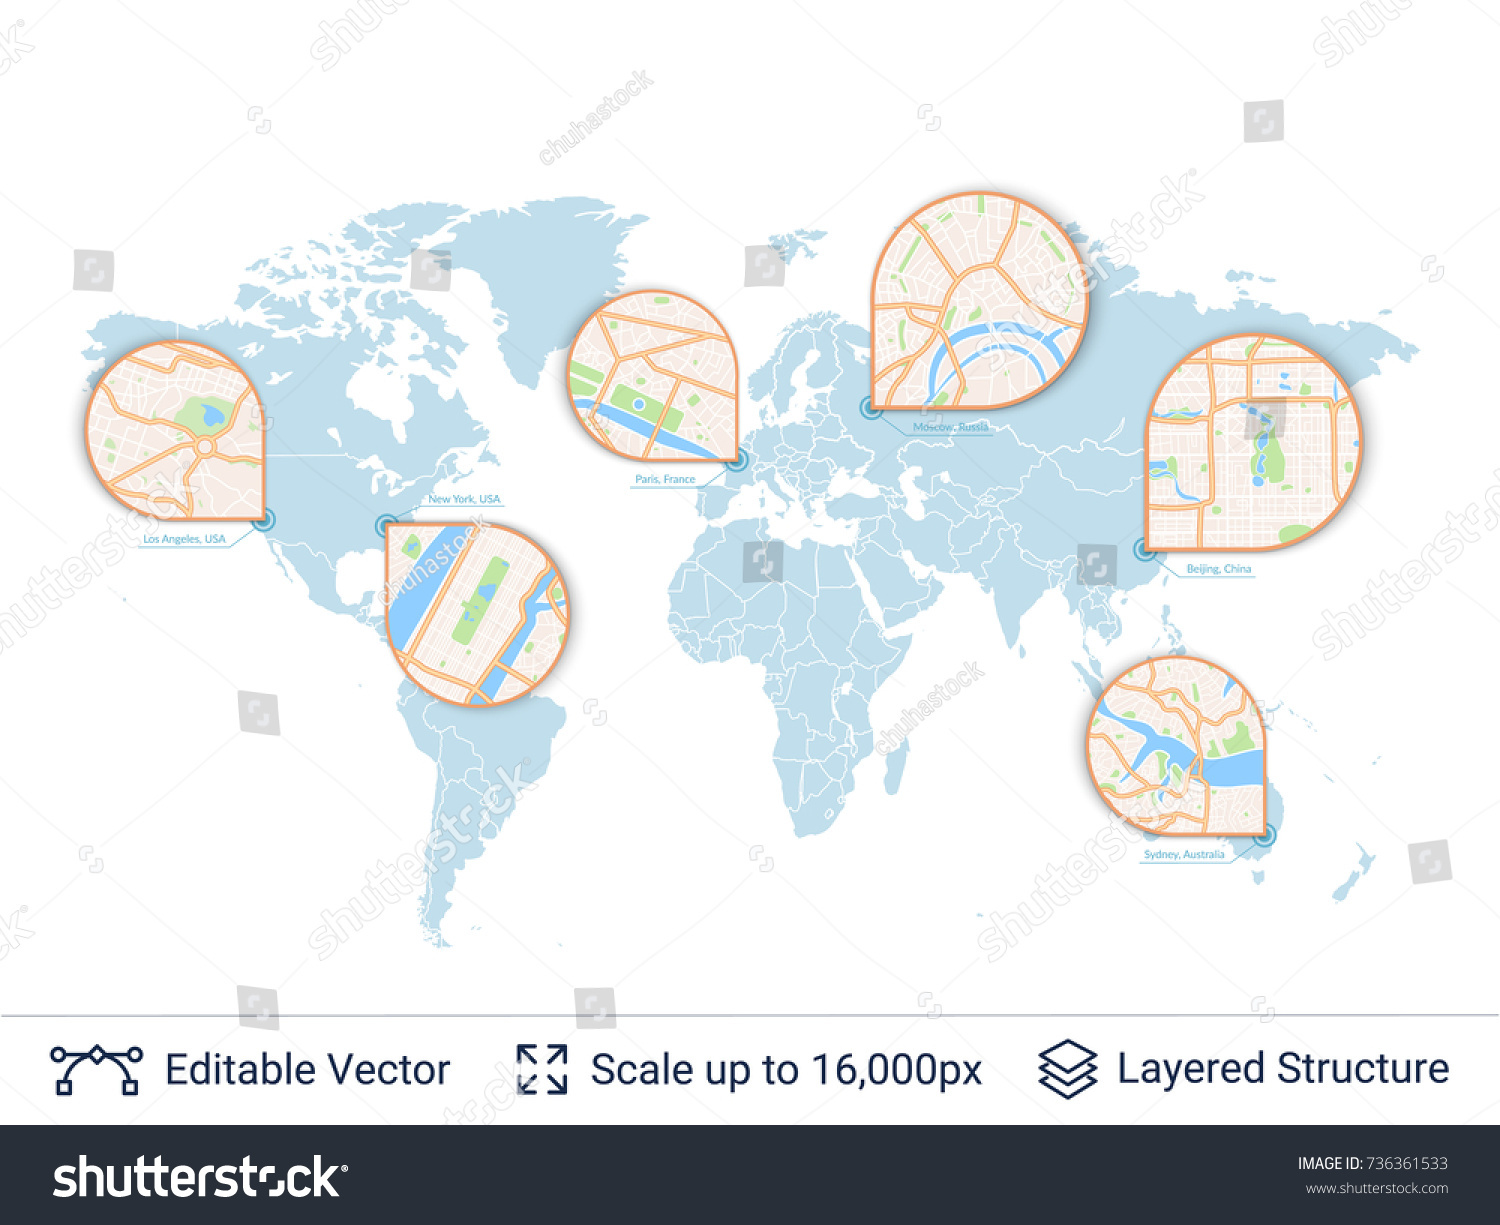 World map city plan zoom earth vector de stock736361533 shutterstock world map and city plan in zoom earth map with zoom window and city scheme gumiabroncs Gallery